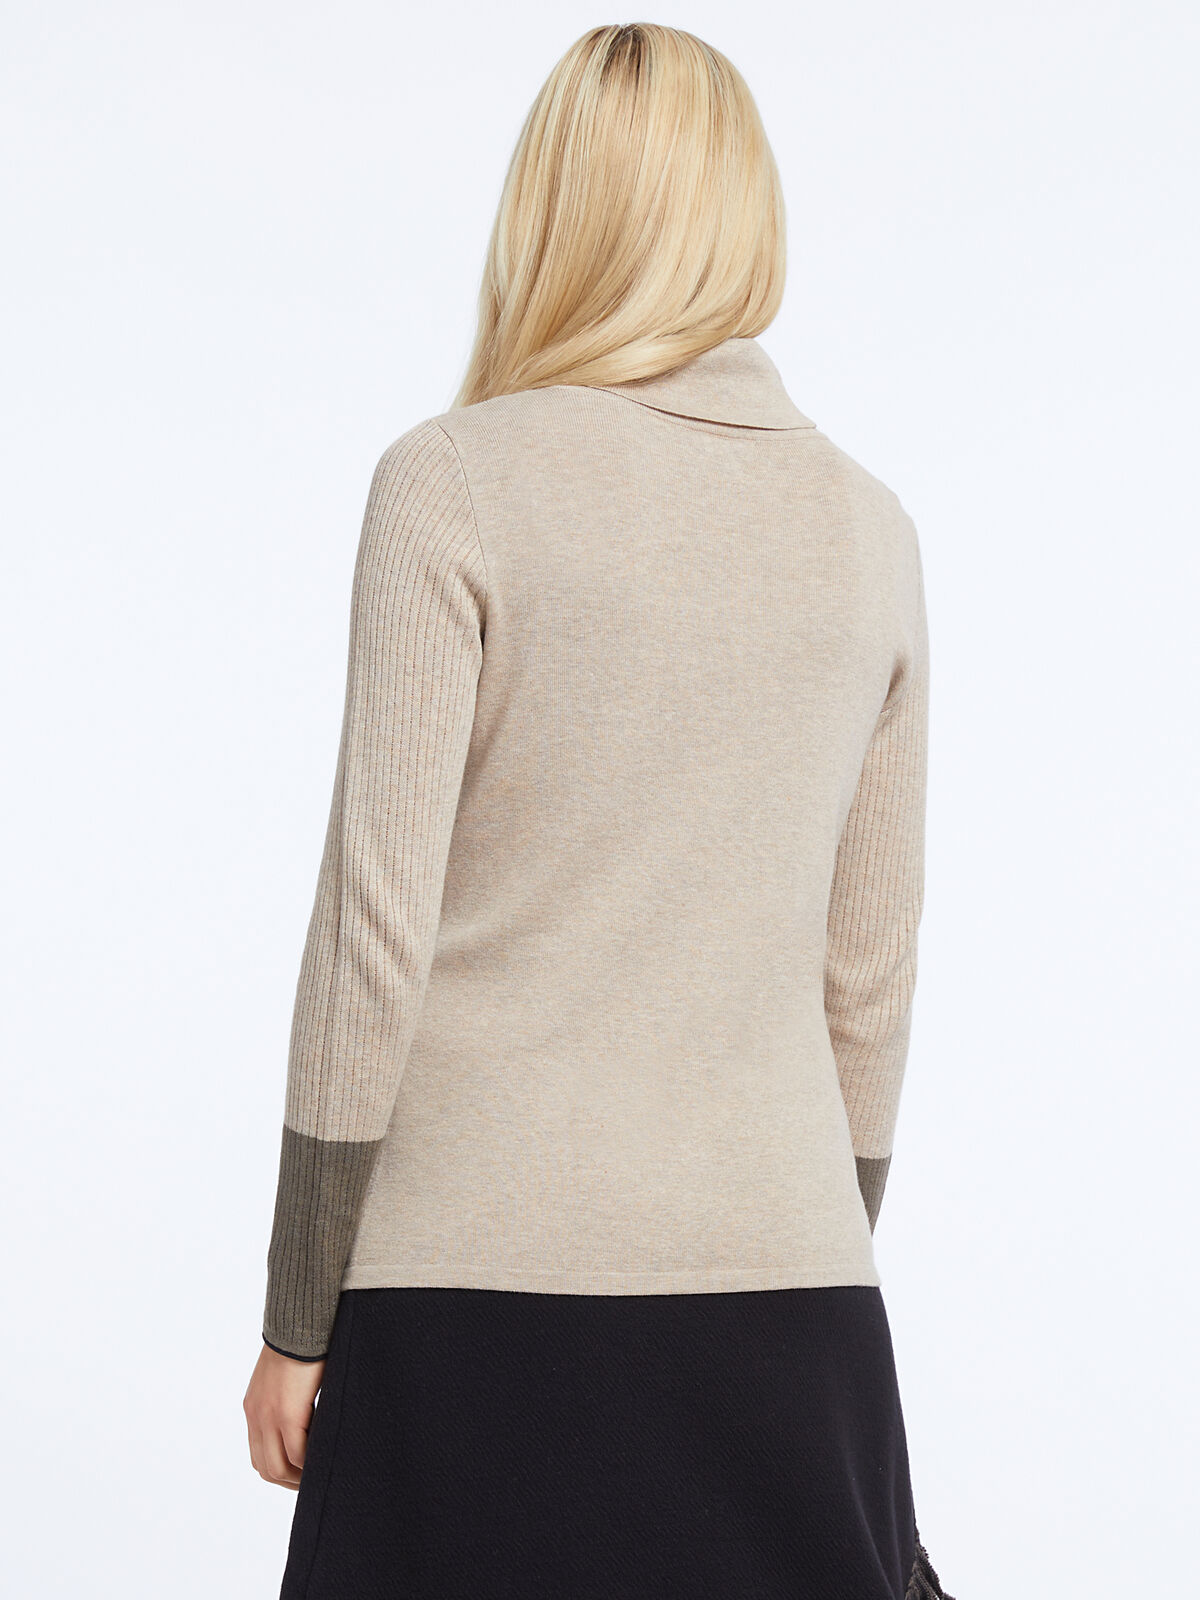 Balance Turtleneck Sweater